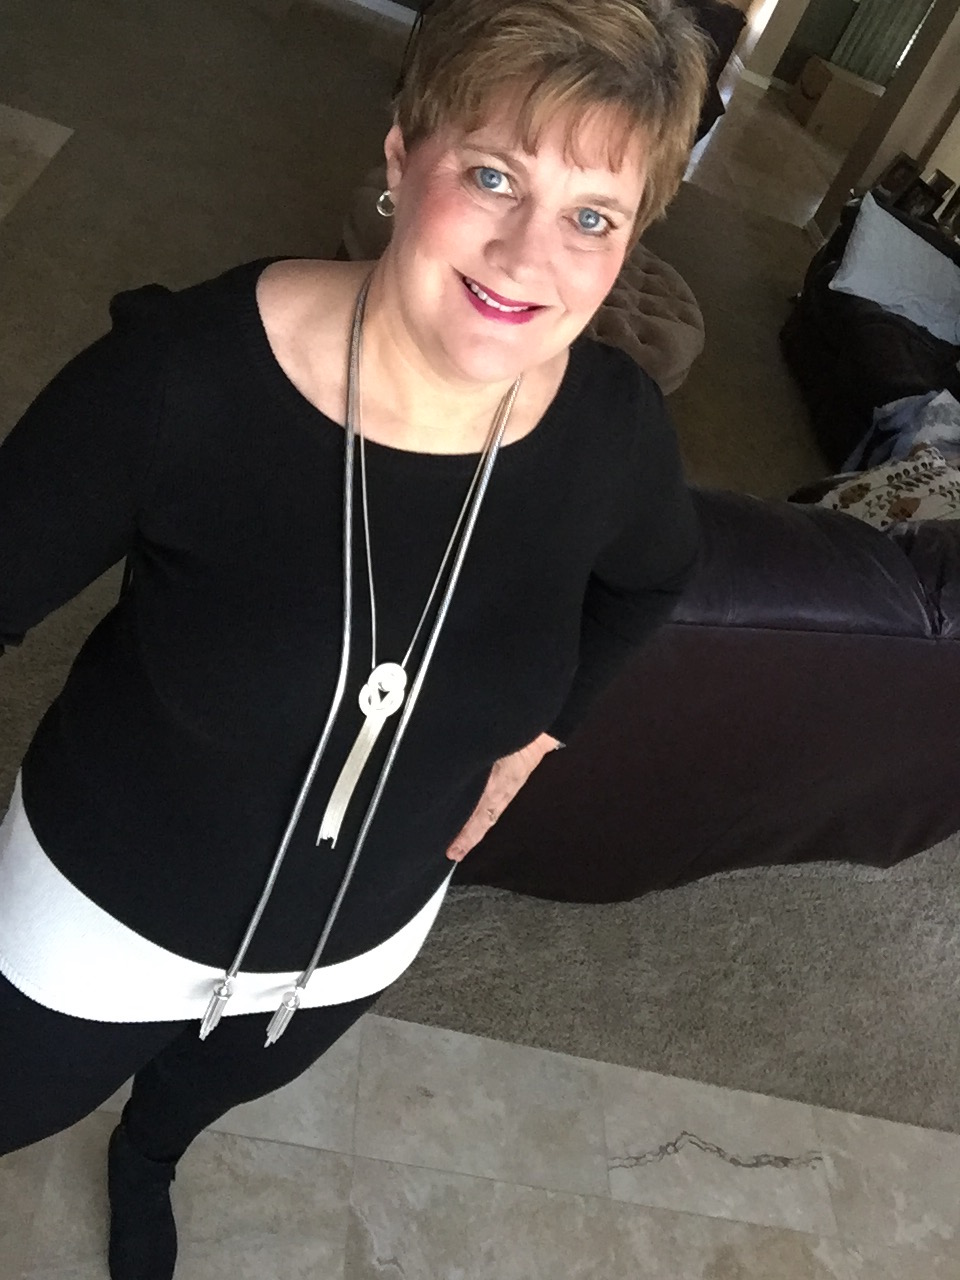 Cathy Lawdanski, mysideof50.com pairs old with new for a whole new look.